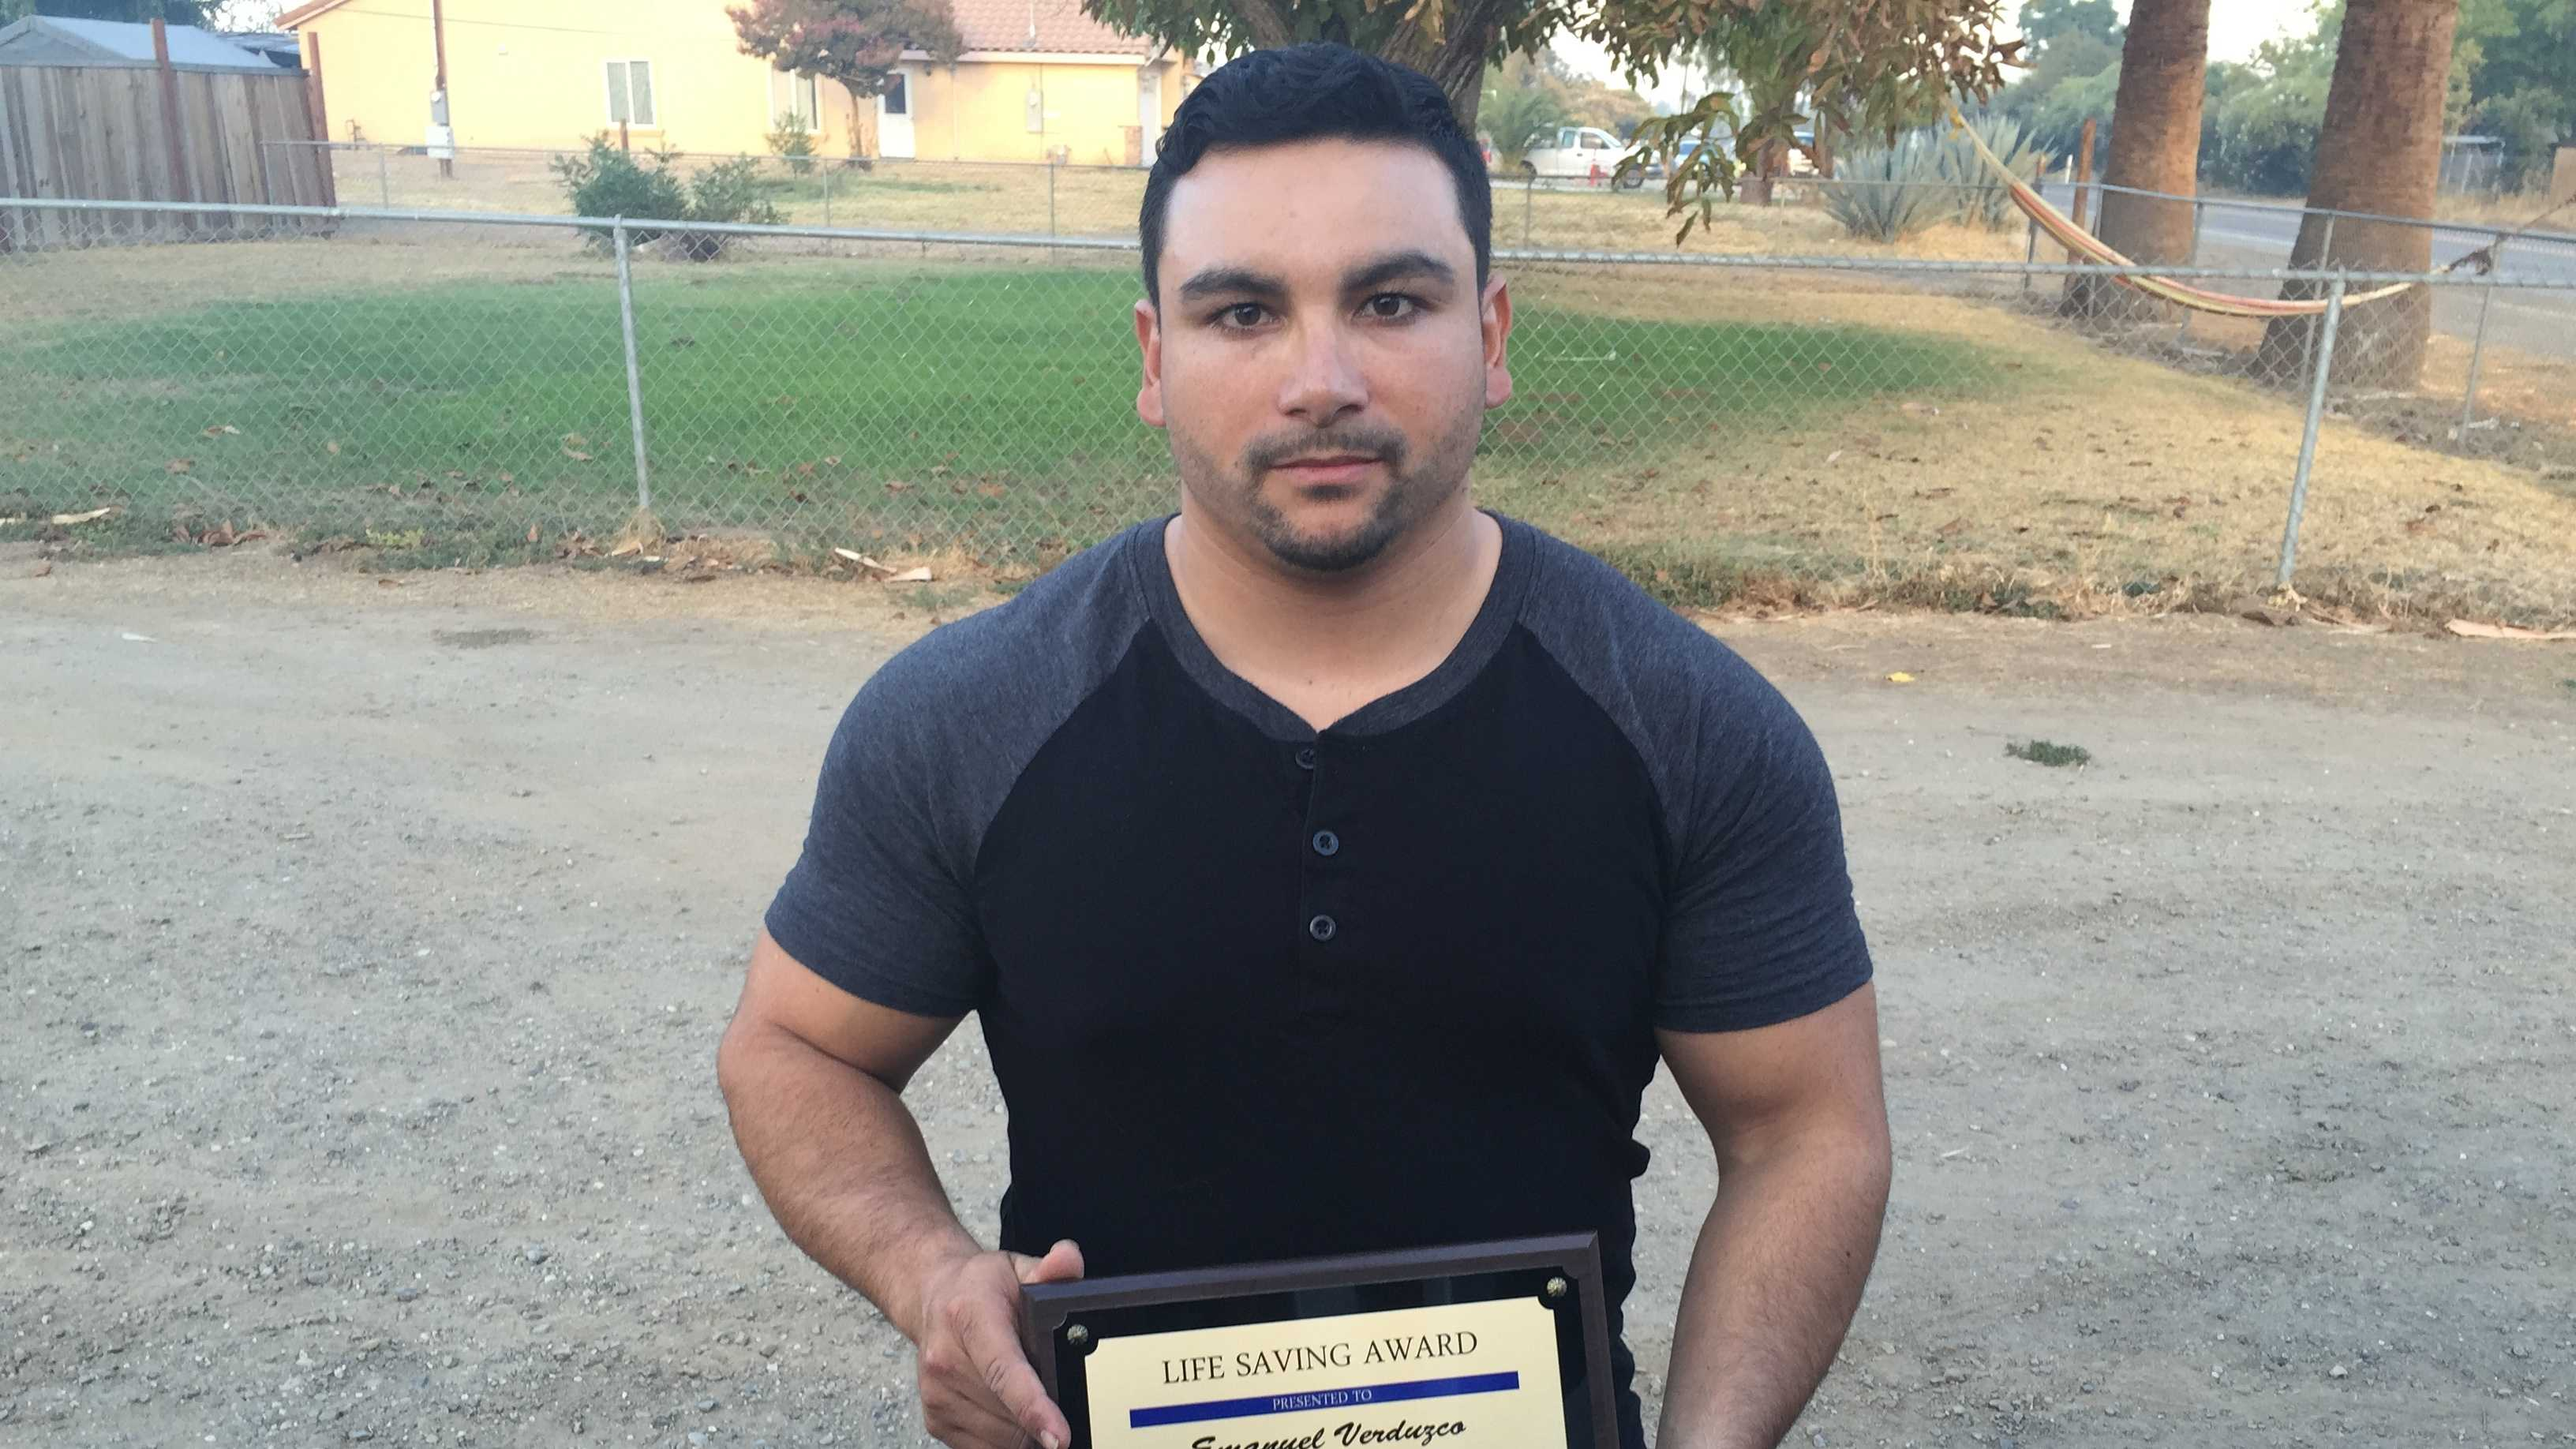 Emanuel Verduzco, 28, of Yuba City, assisted officers in carrying the victim man to safety.